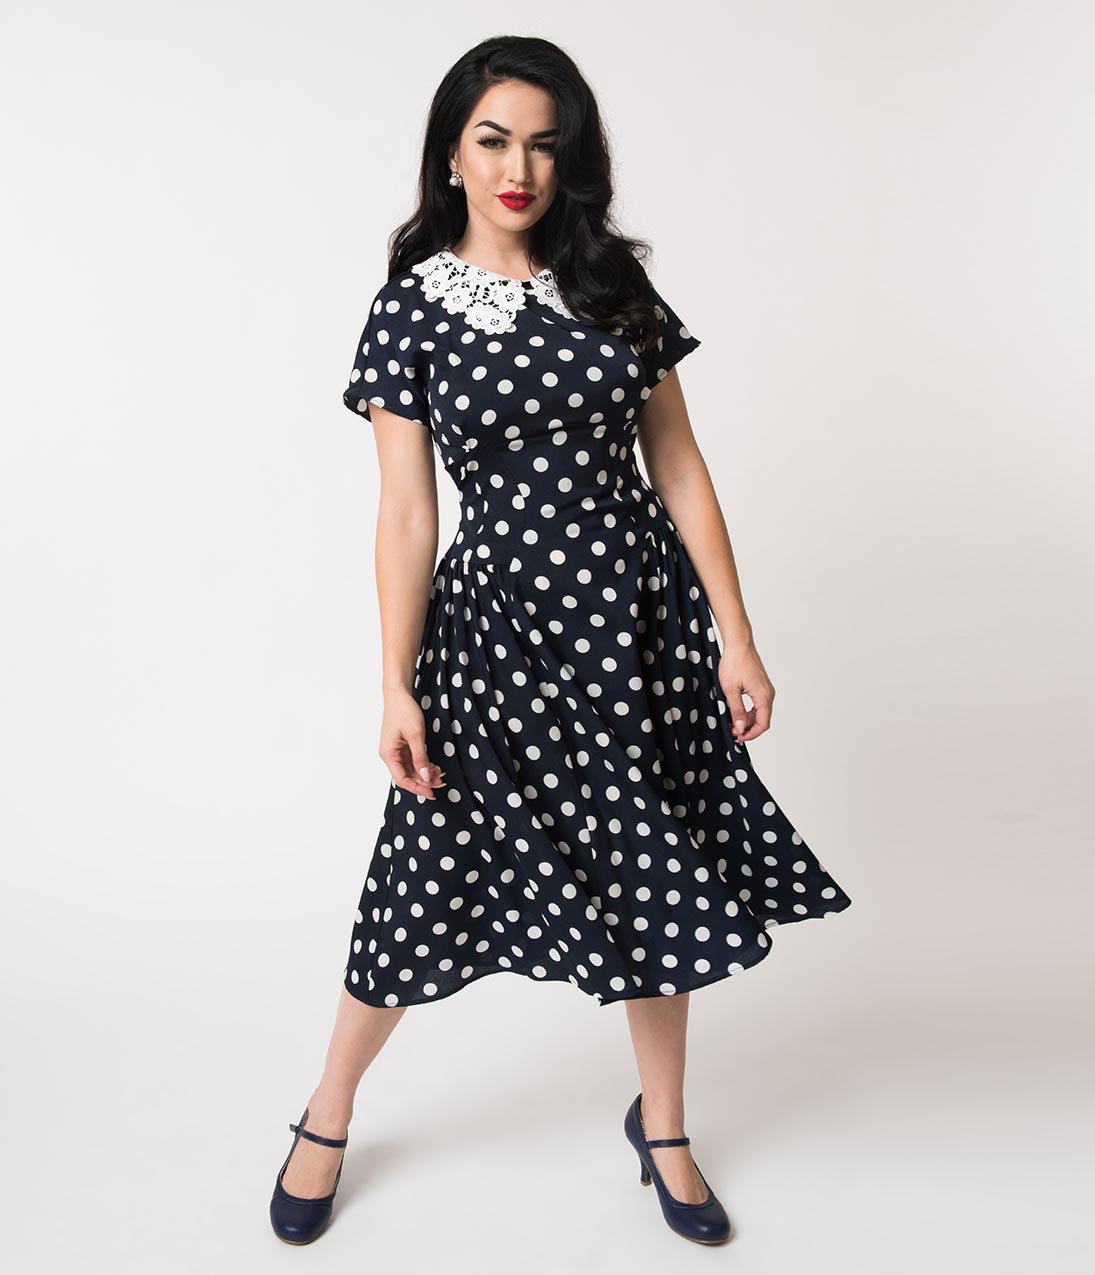 669c9ac020e8 1940s Dresses | 40s Dress, Swing Dress Unique Vintage 1940S Navy White  Polka Dot Lace